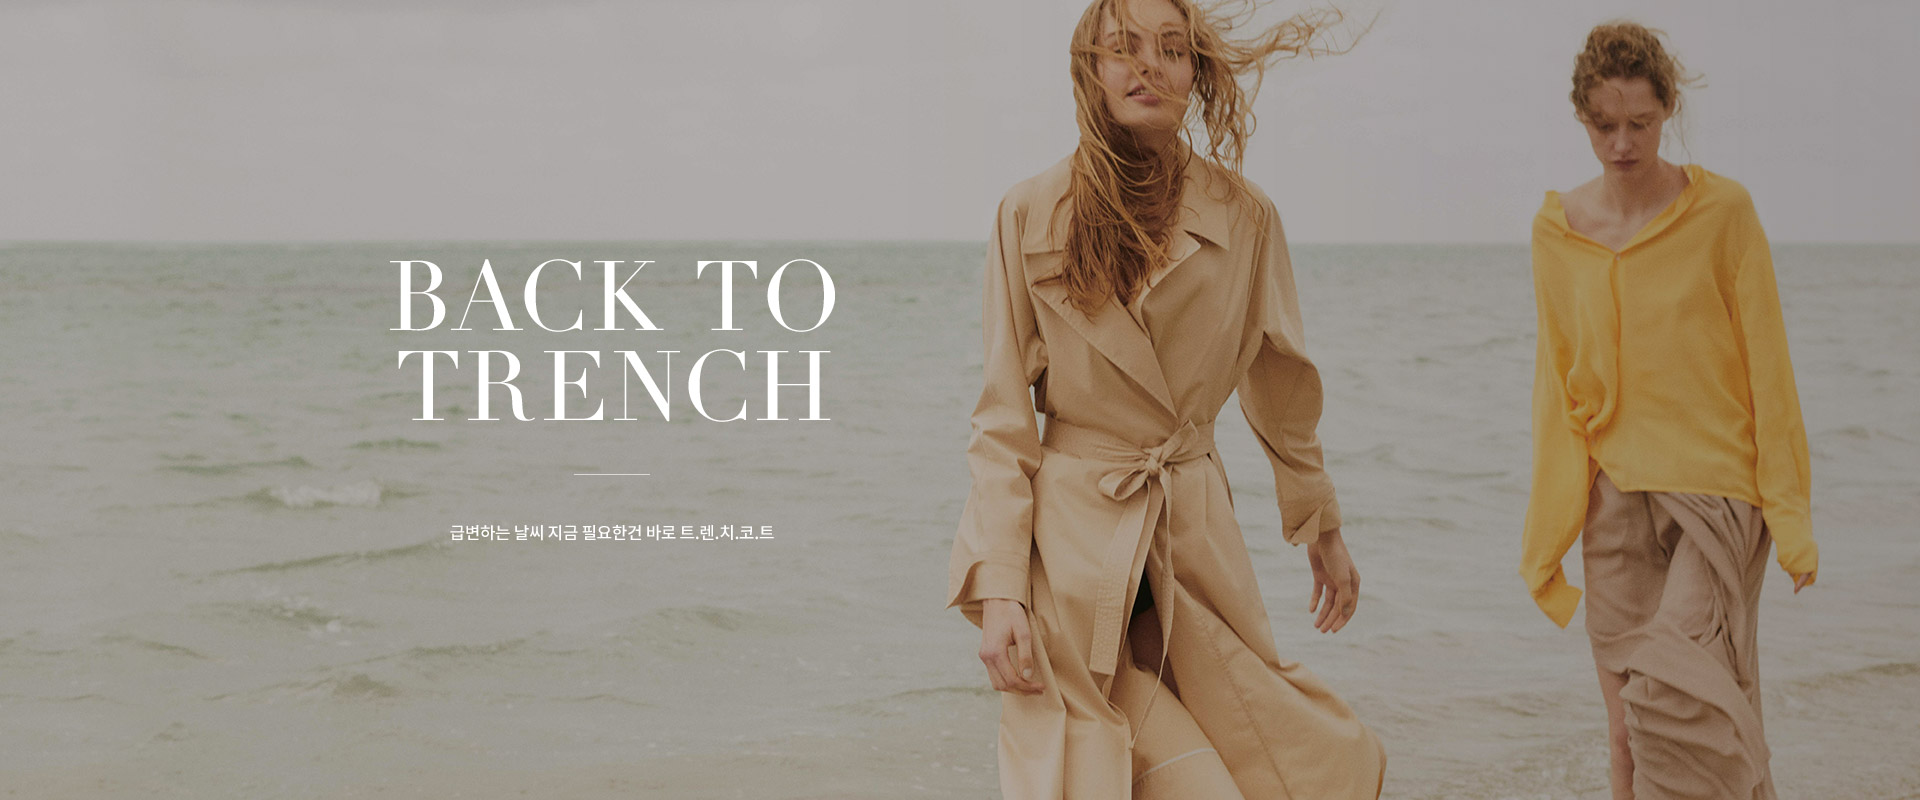 BACK TO TRENCH